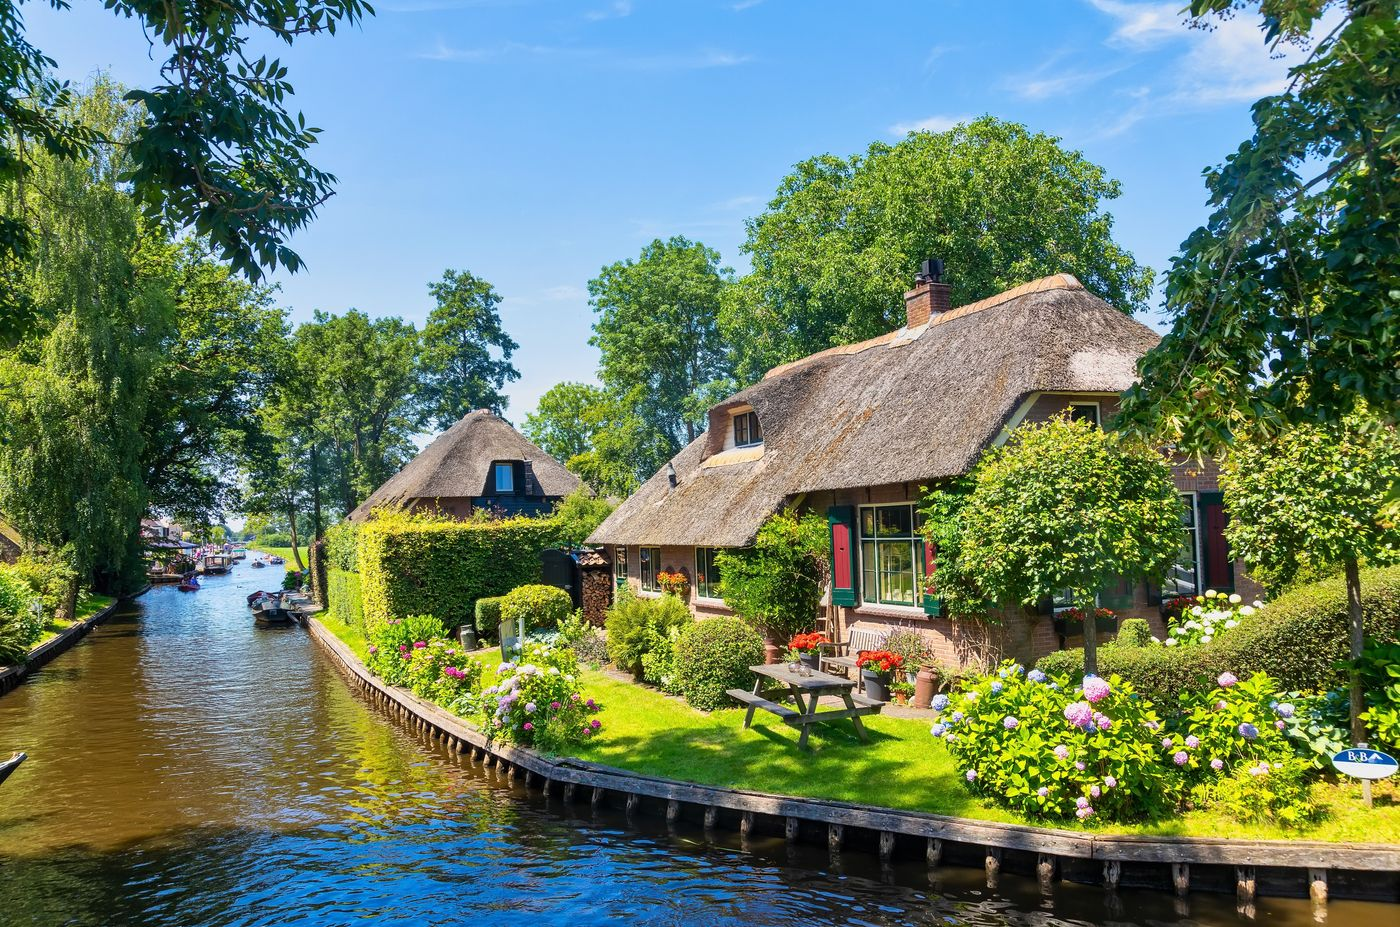 how to reach Giethoorn